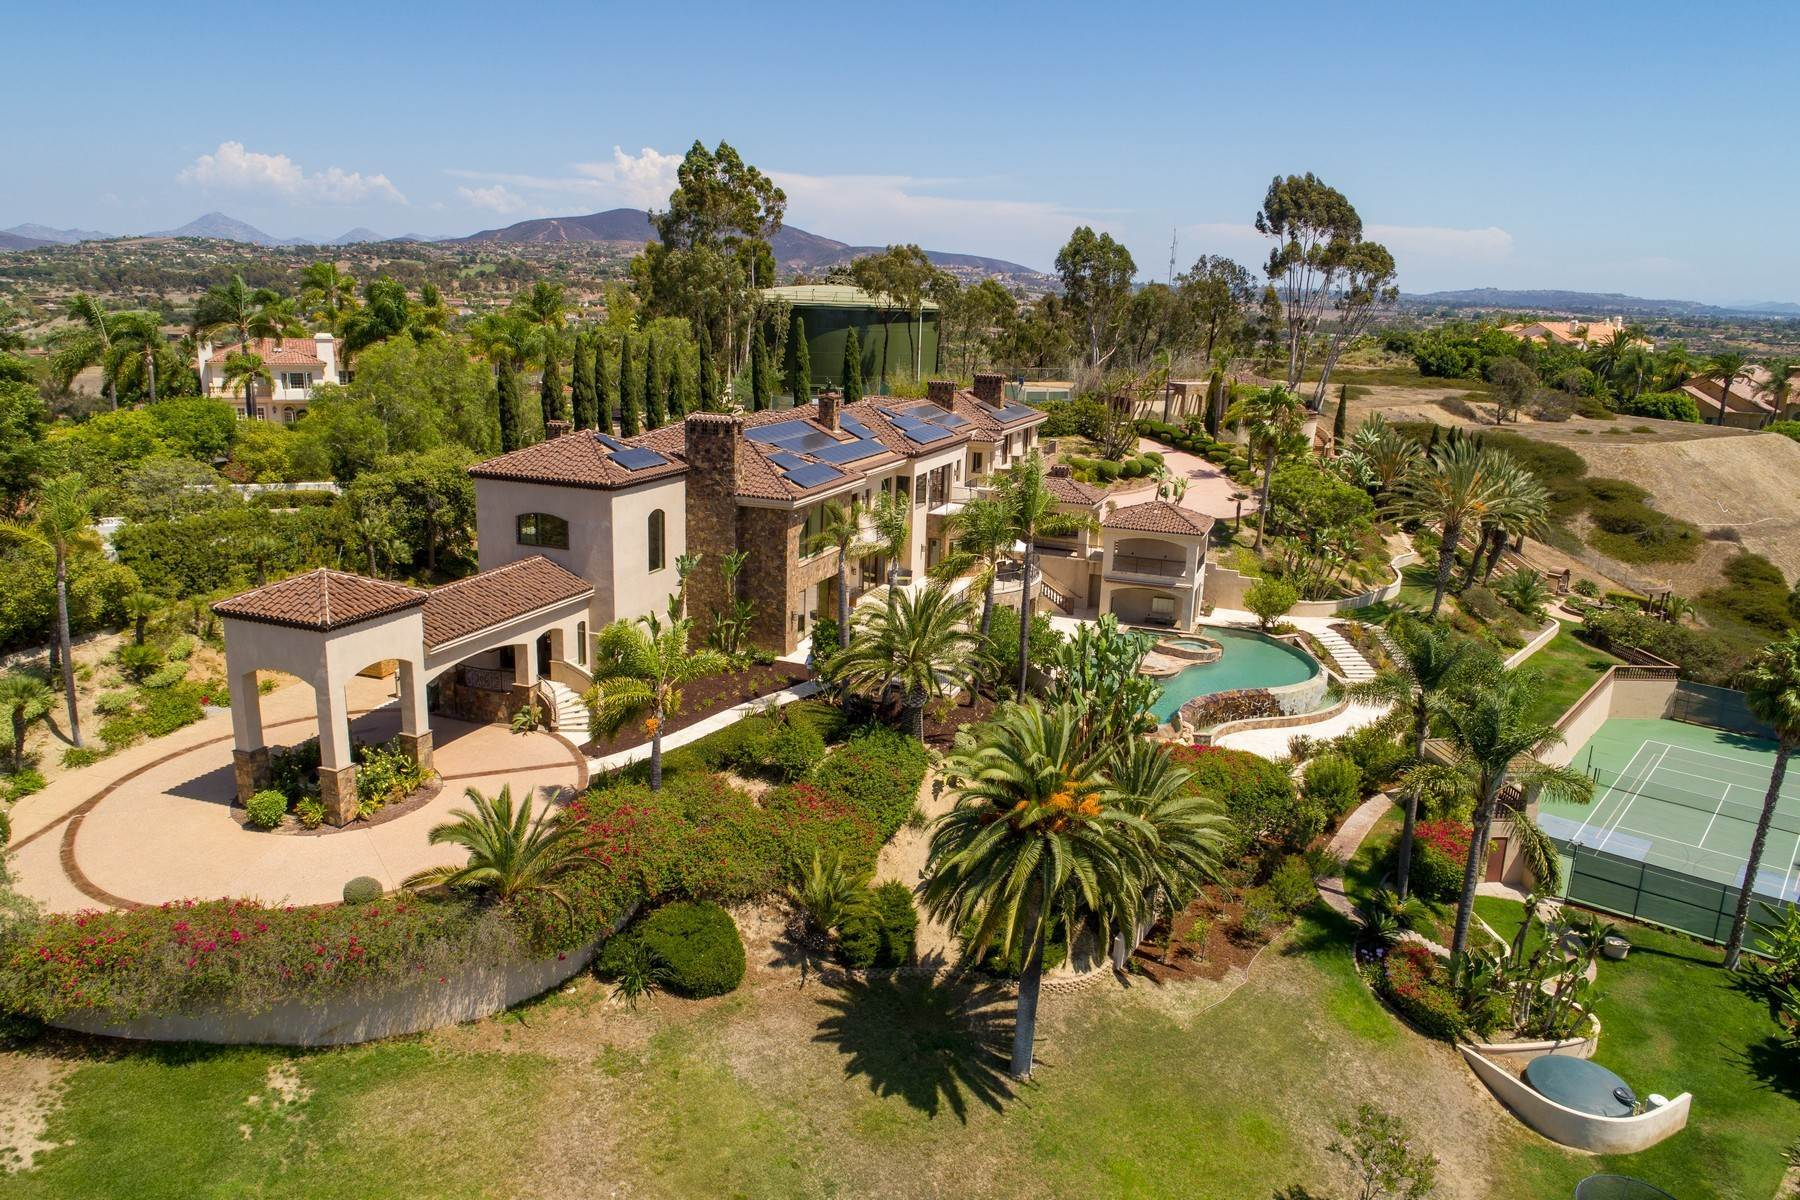 Single Family Homes for Sale at 17261 Circa Oriente Rancho Santa Fe, California 92067 United States